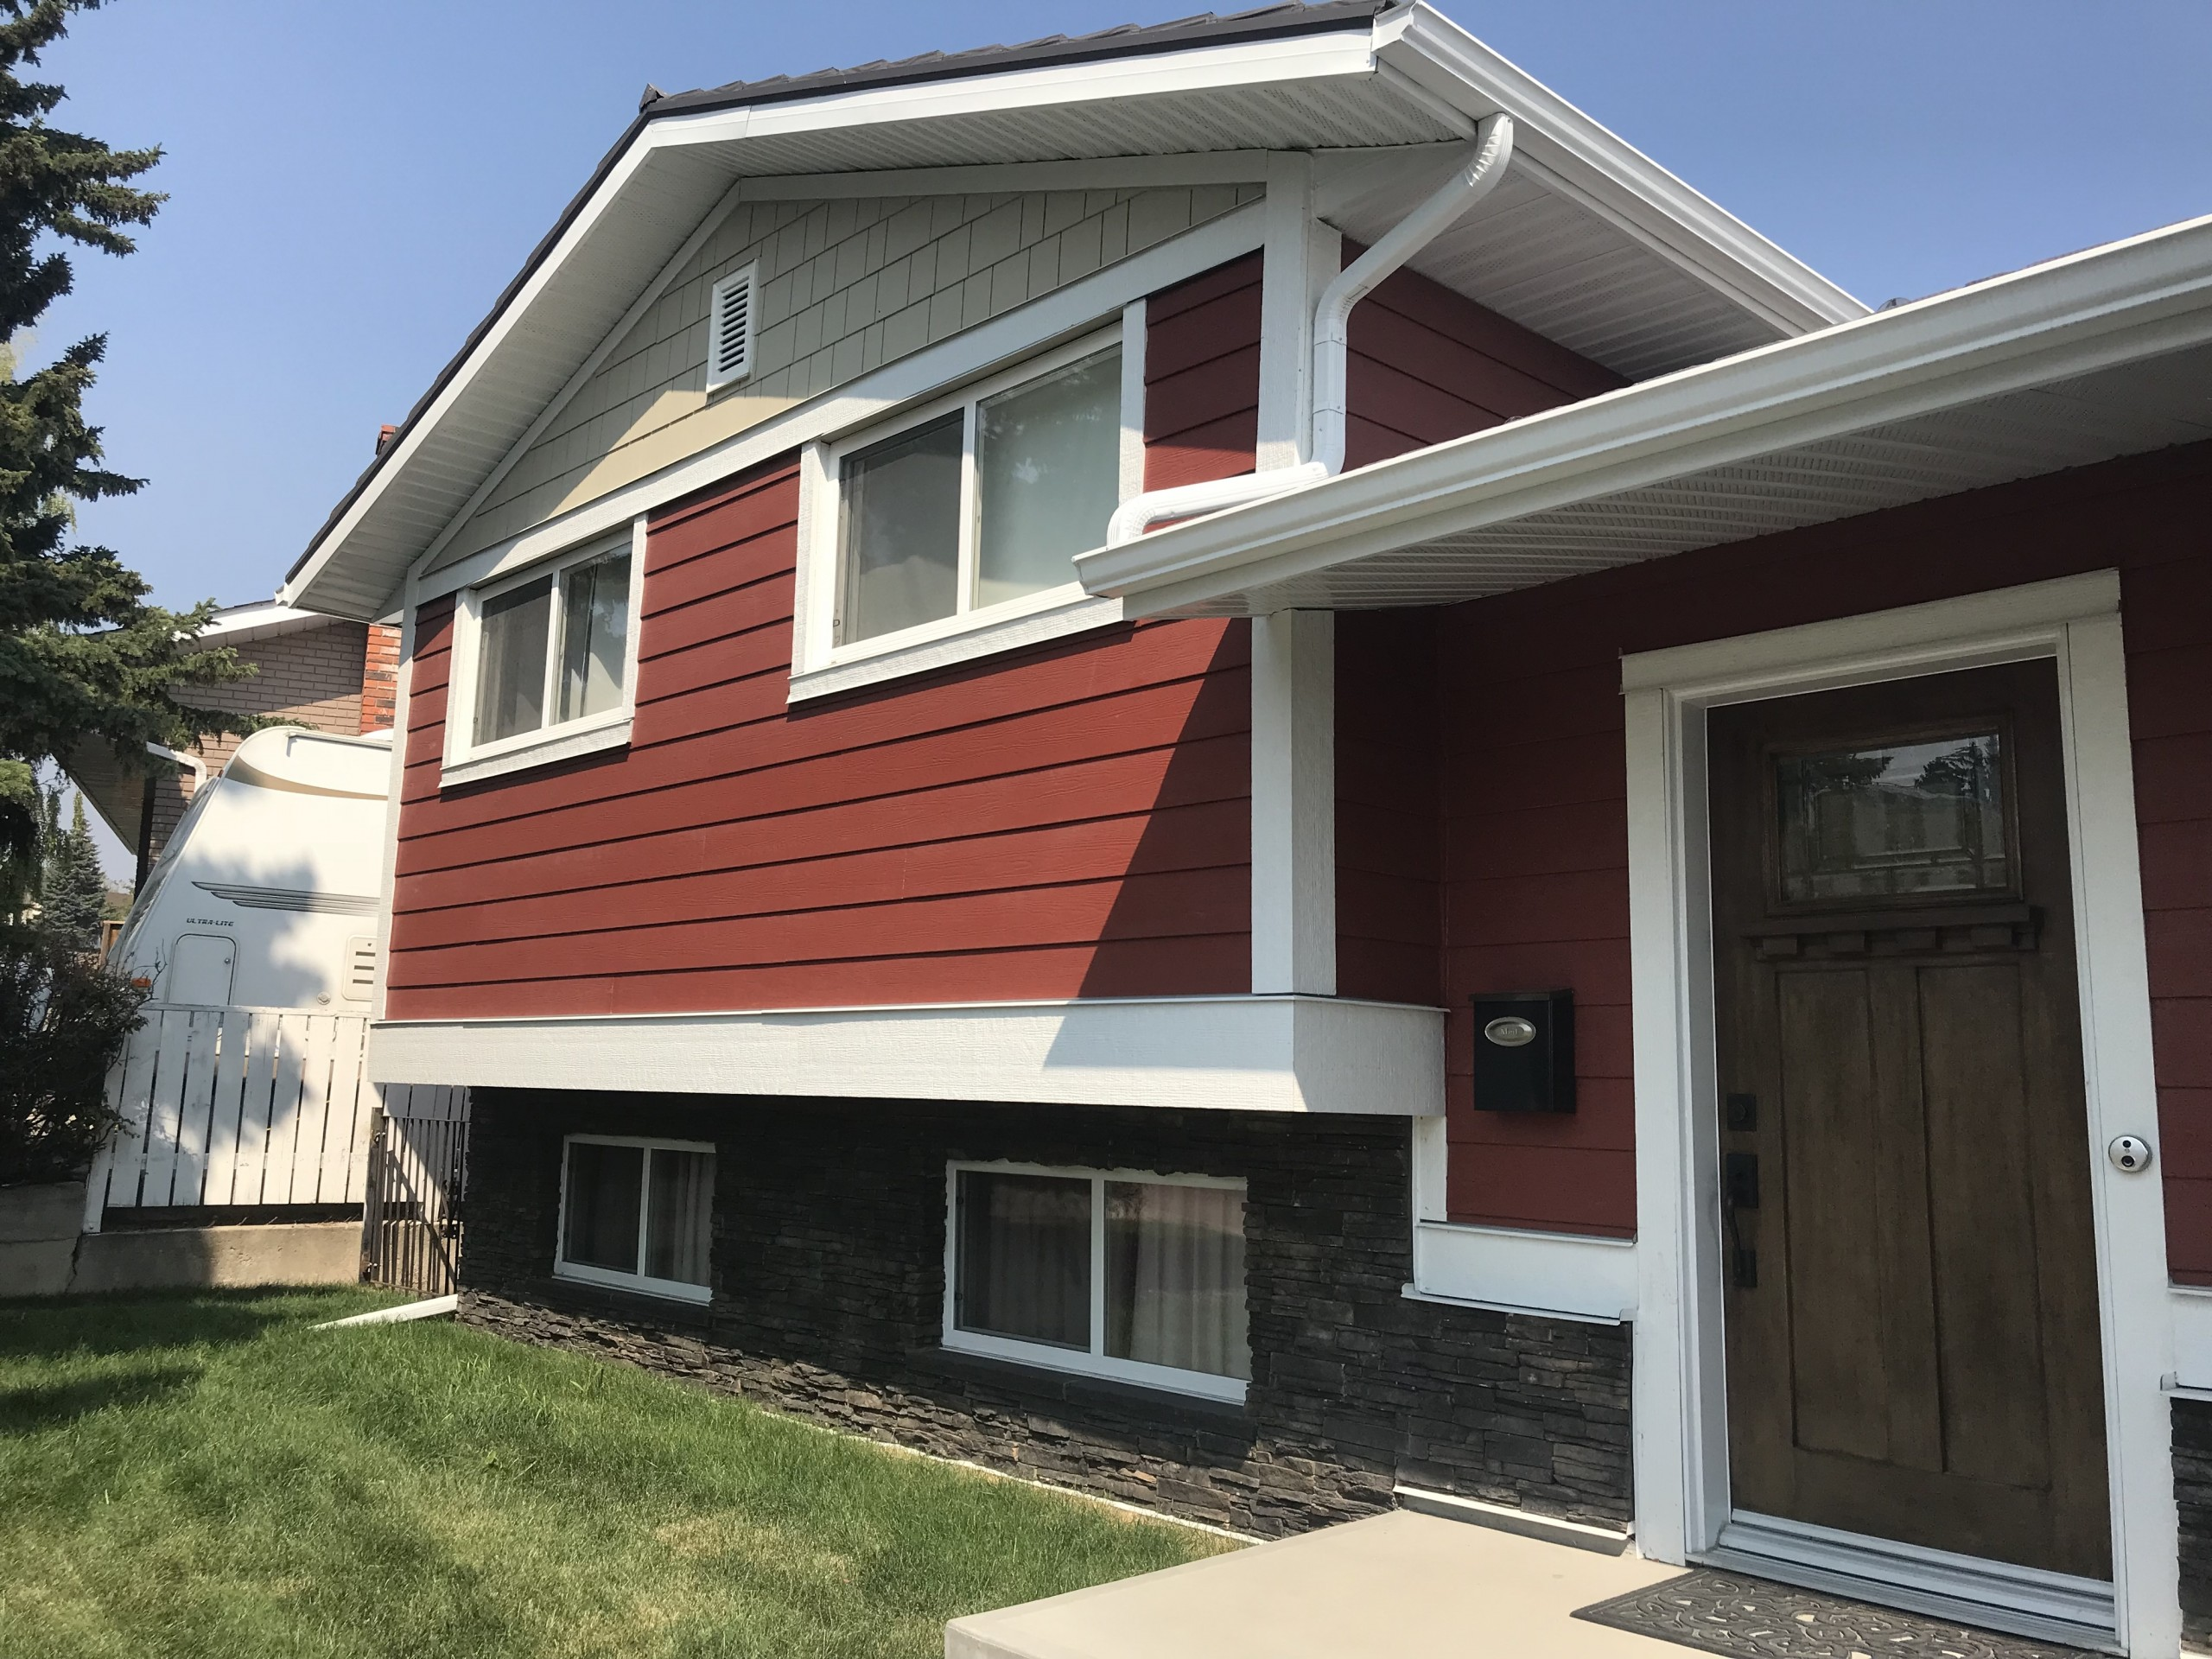 Exterior photo of house renovation showing new red siding, dark stone cladding, light beige shingle siding with white windows and trim.